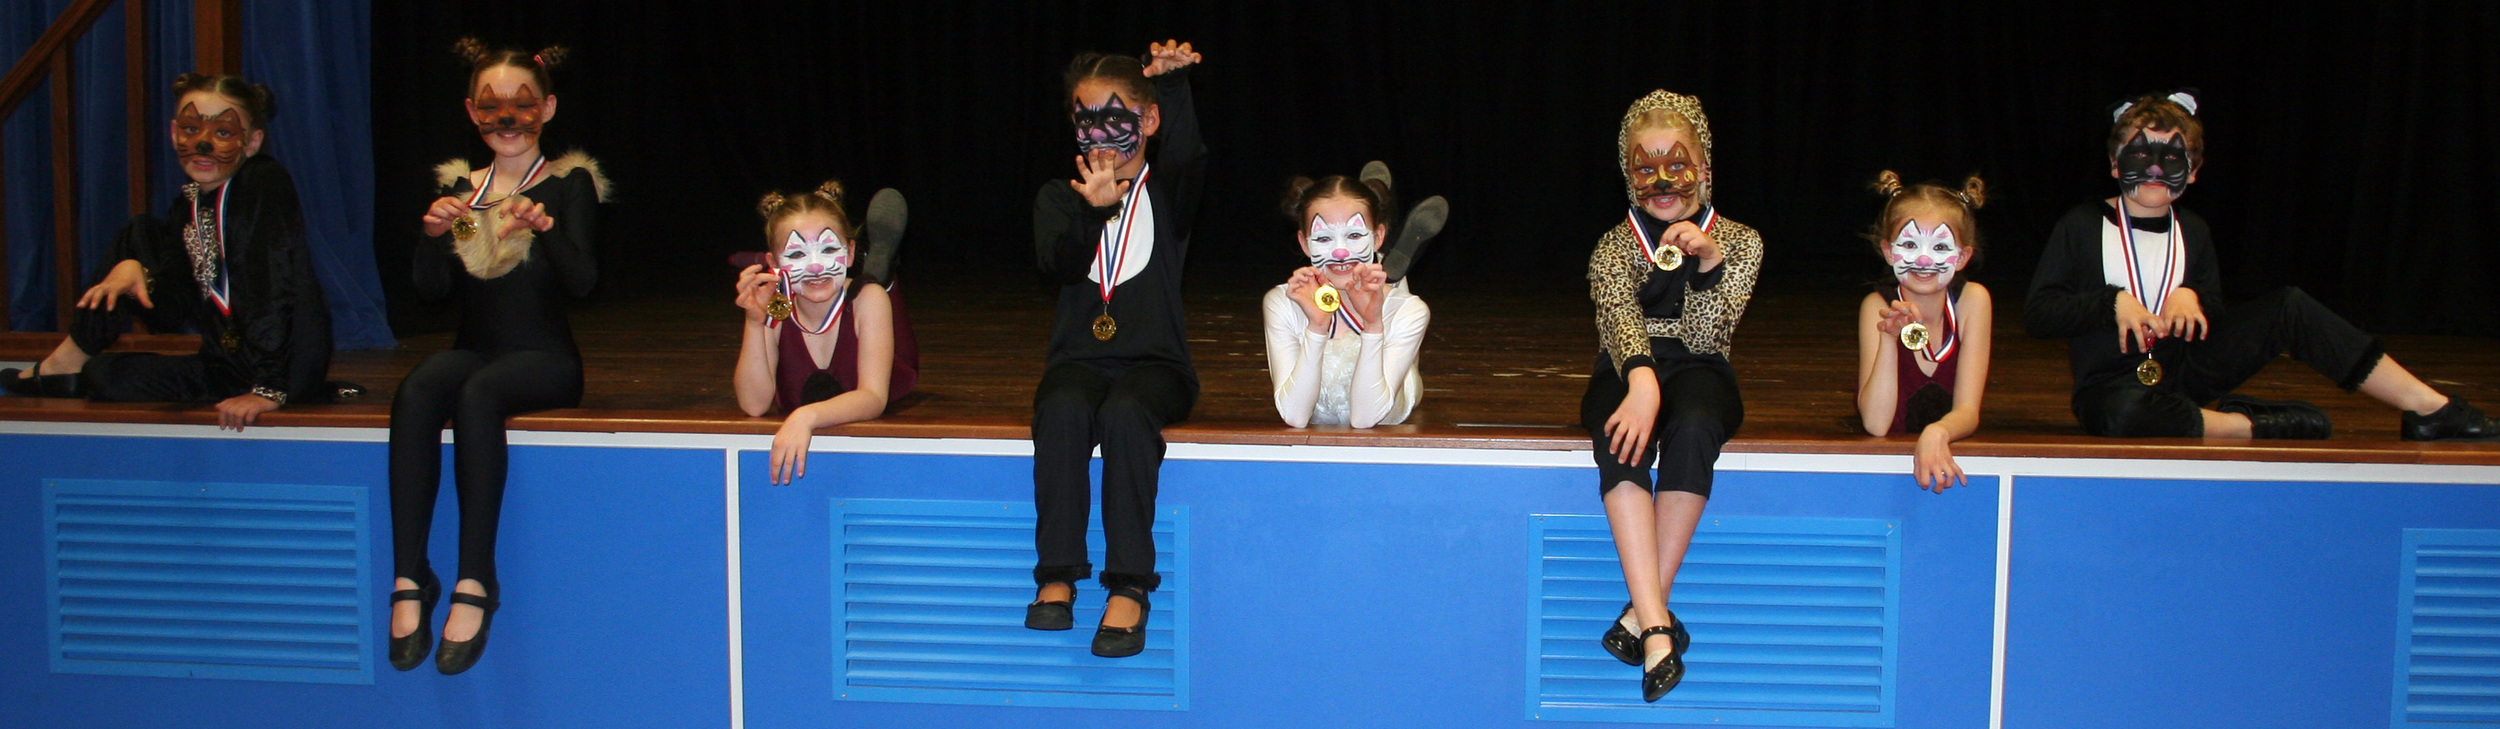 Primary Dance Competition 2016 111.JPG